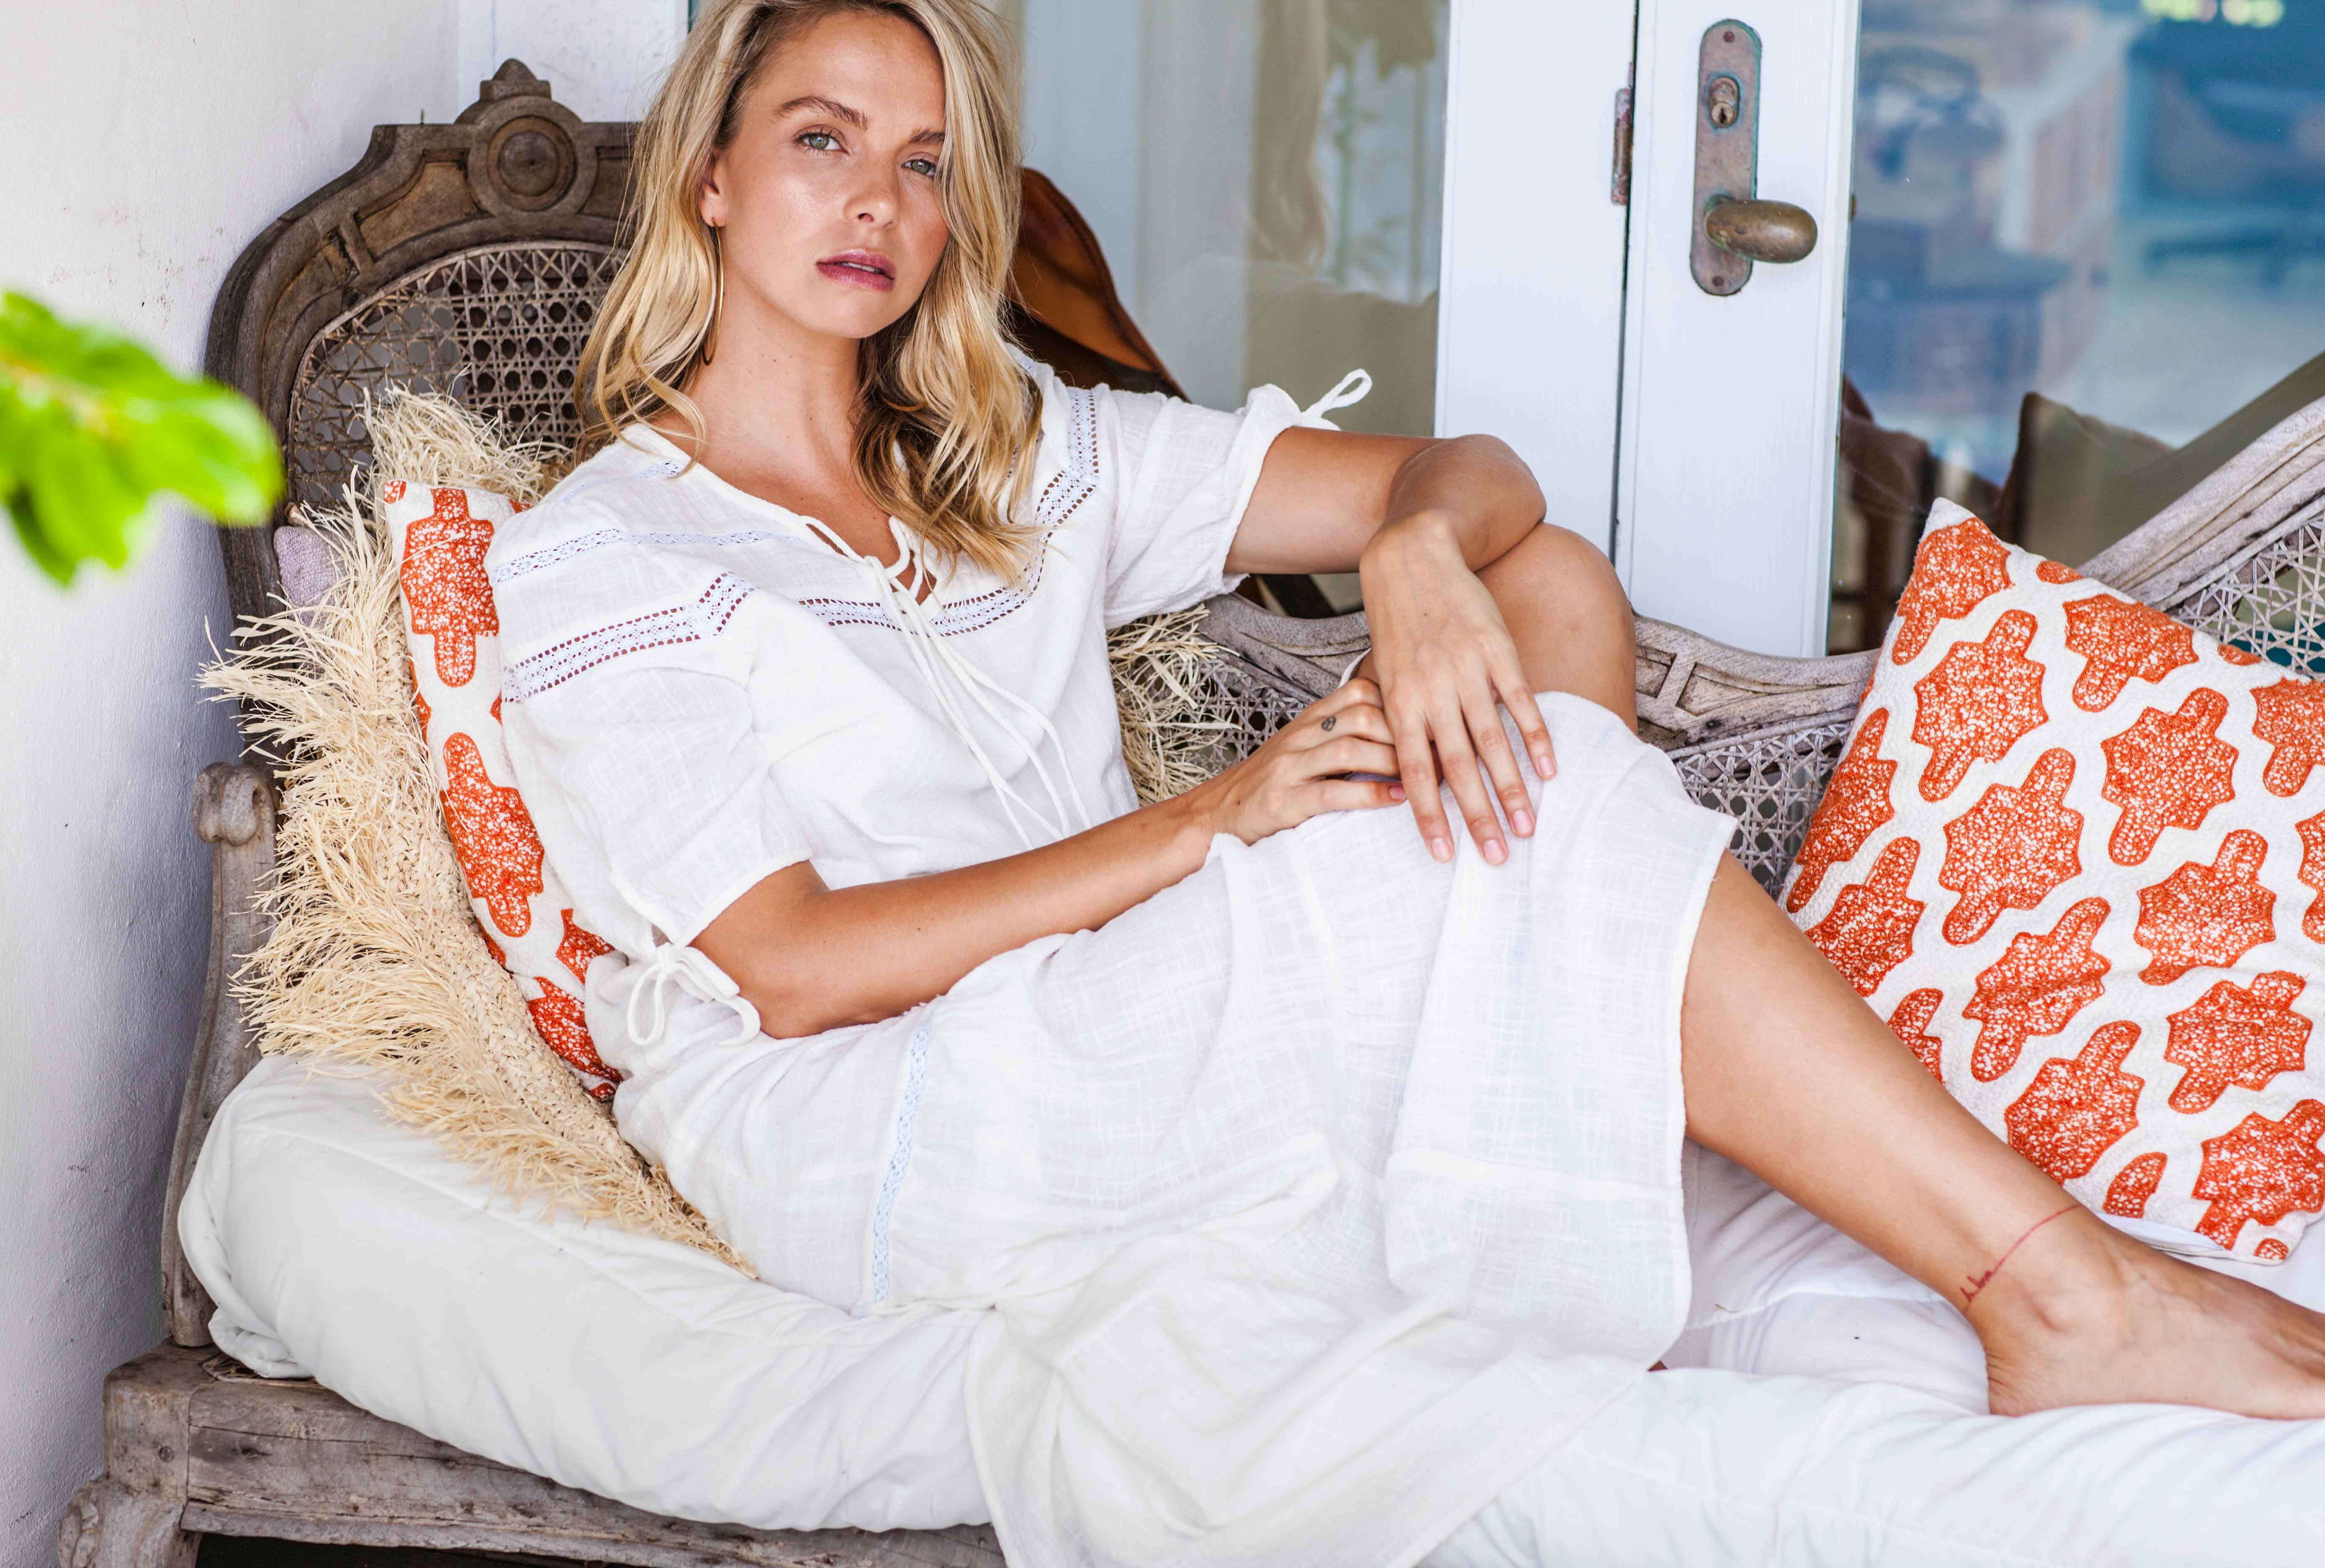 Paddo To Palmy's Chic New Womenswear Collection